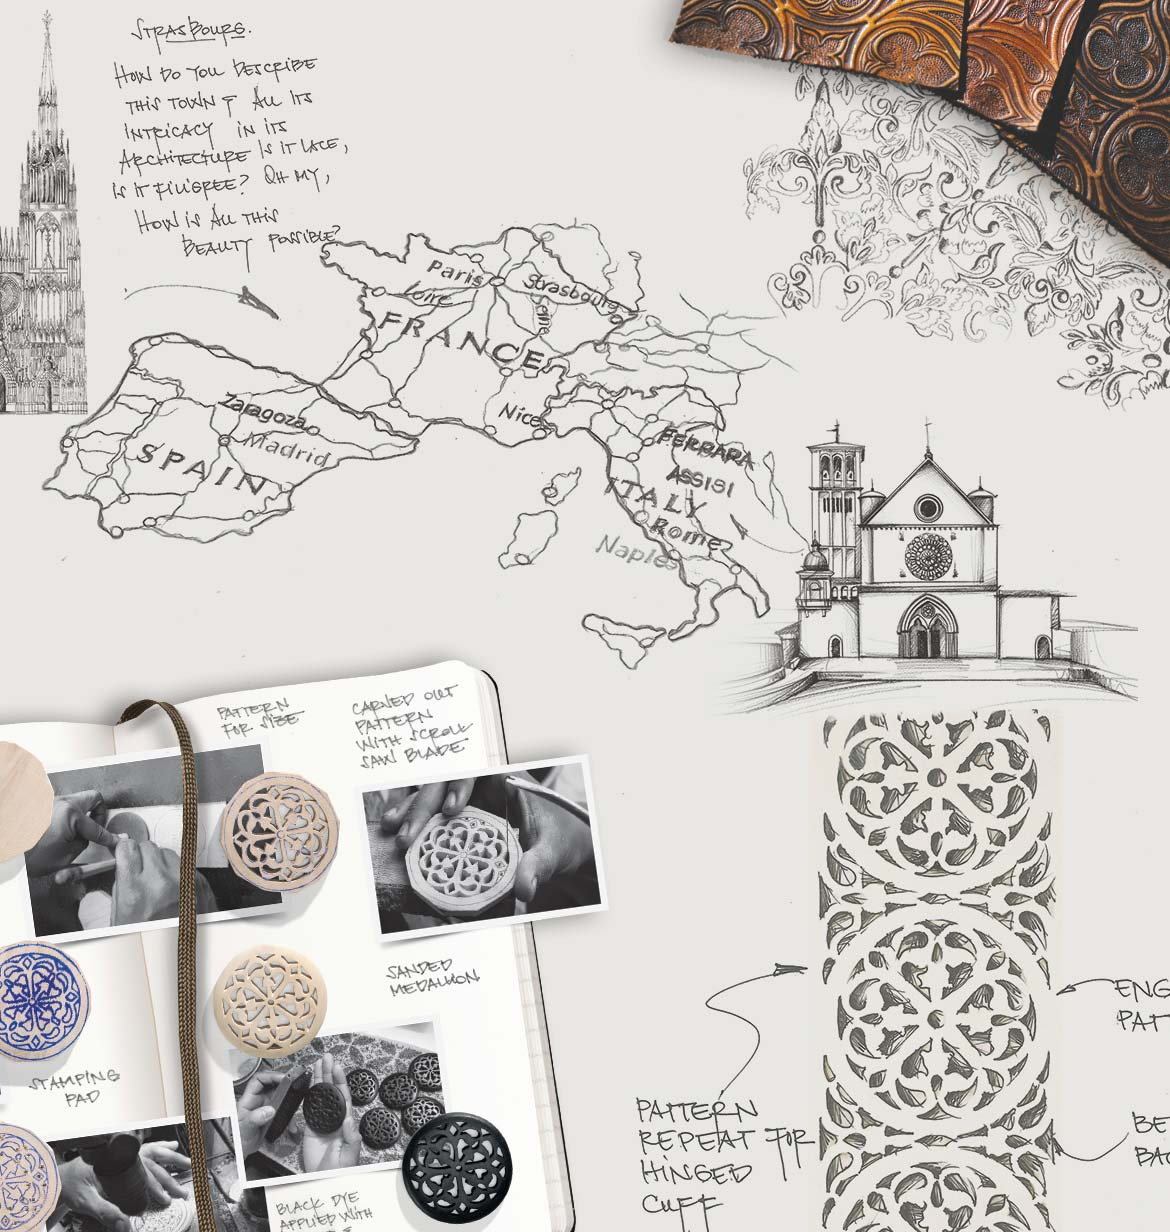 Background Image Of Different Ferrara Sketches And Insperations Sketches Of Churches